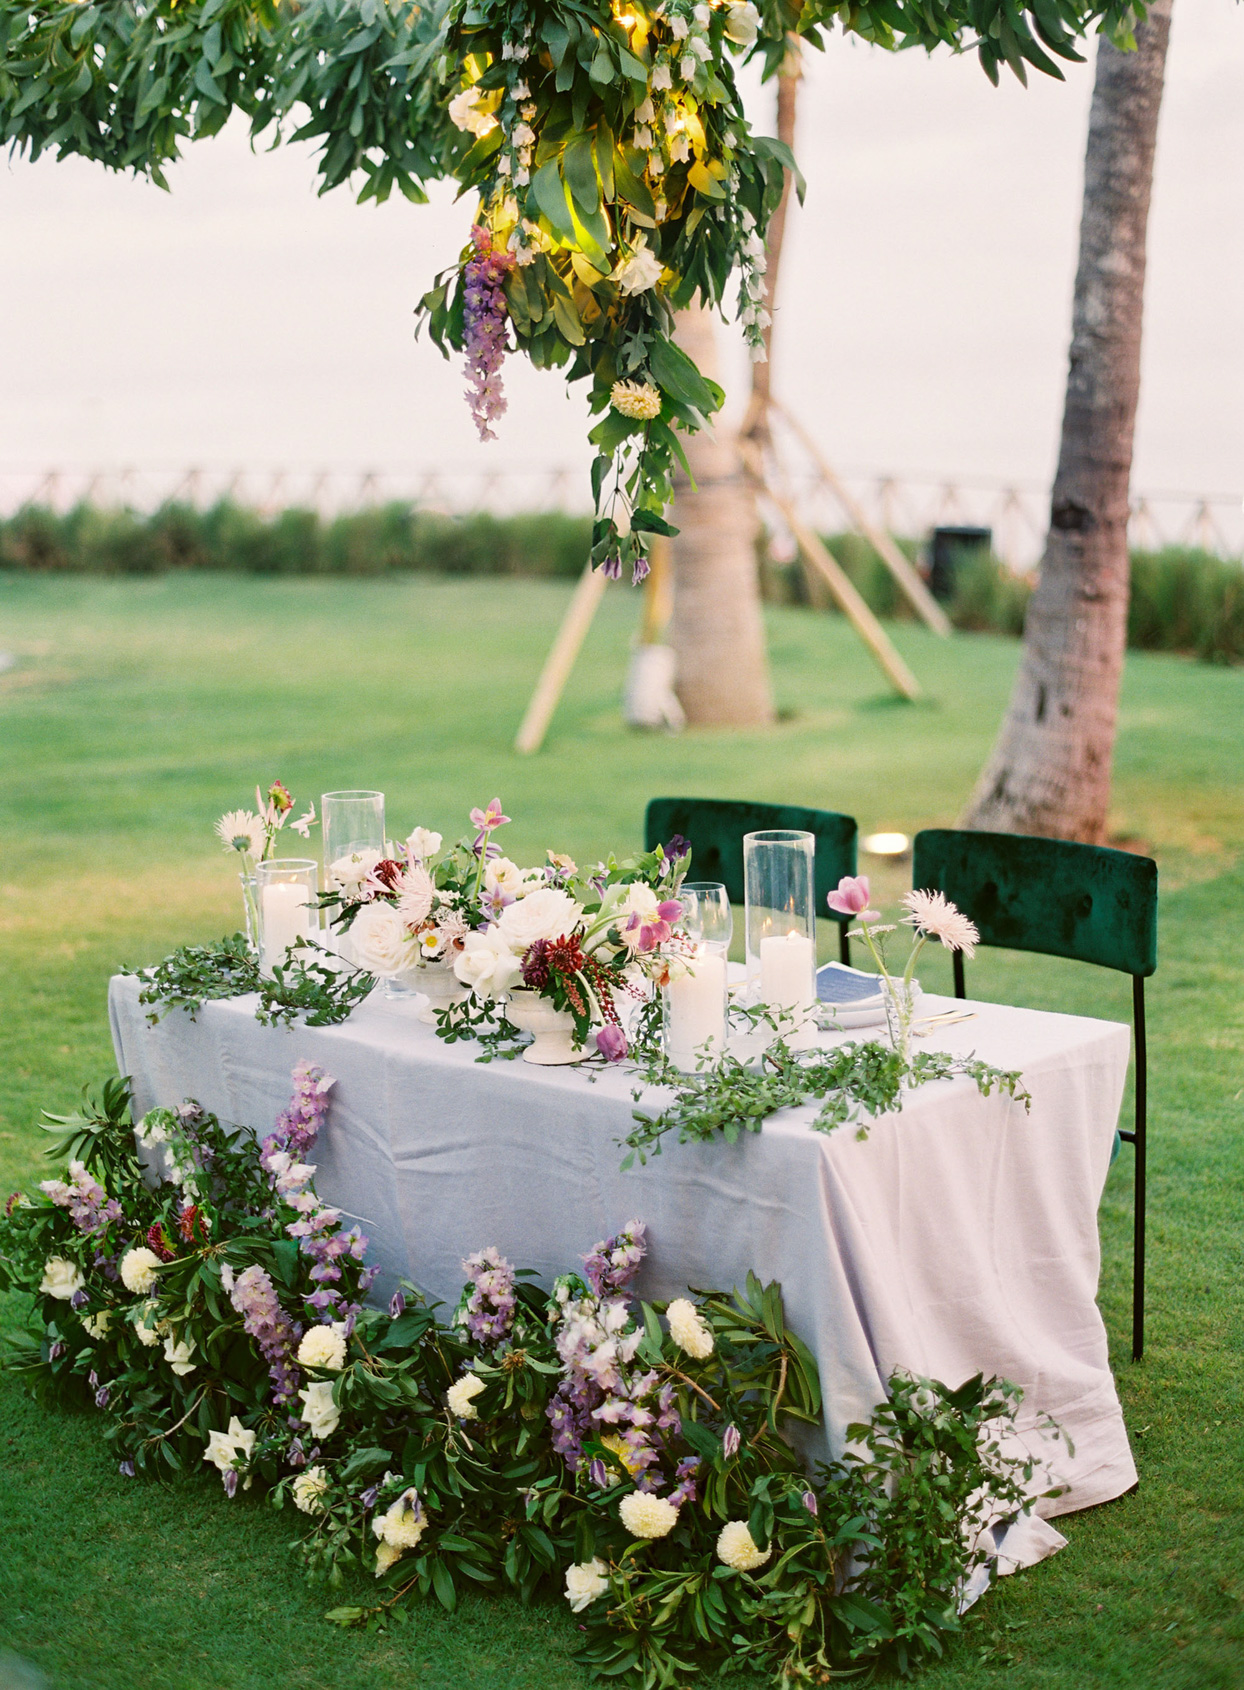 bride and groom wedding reception table with virbrant floral detail